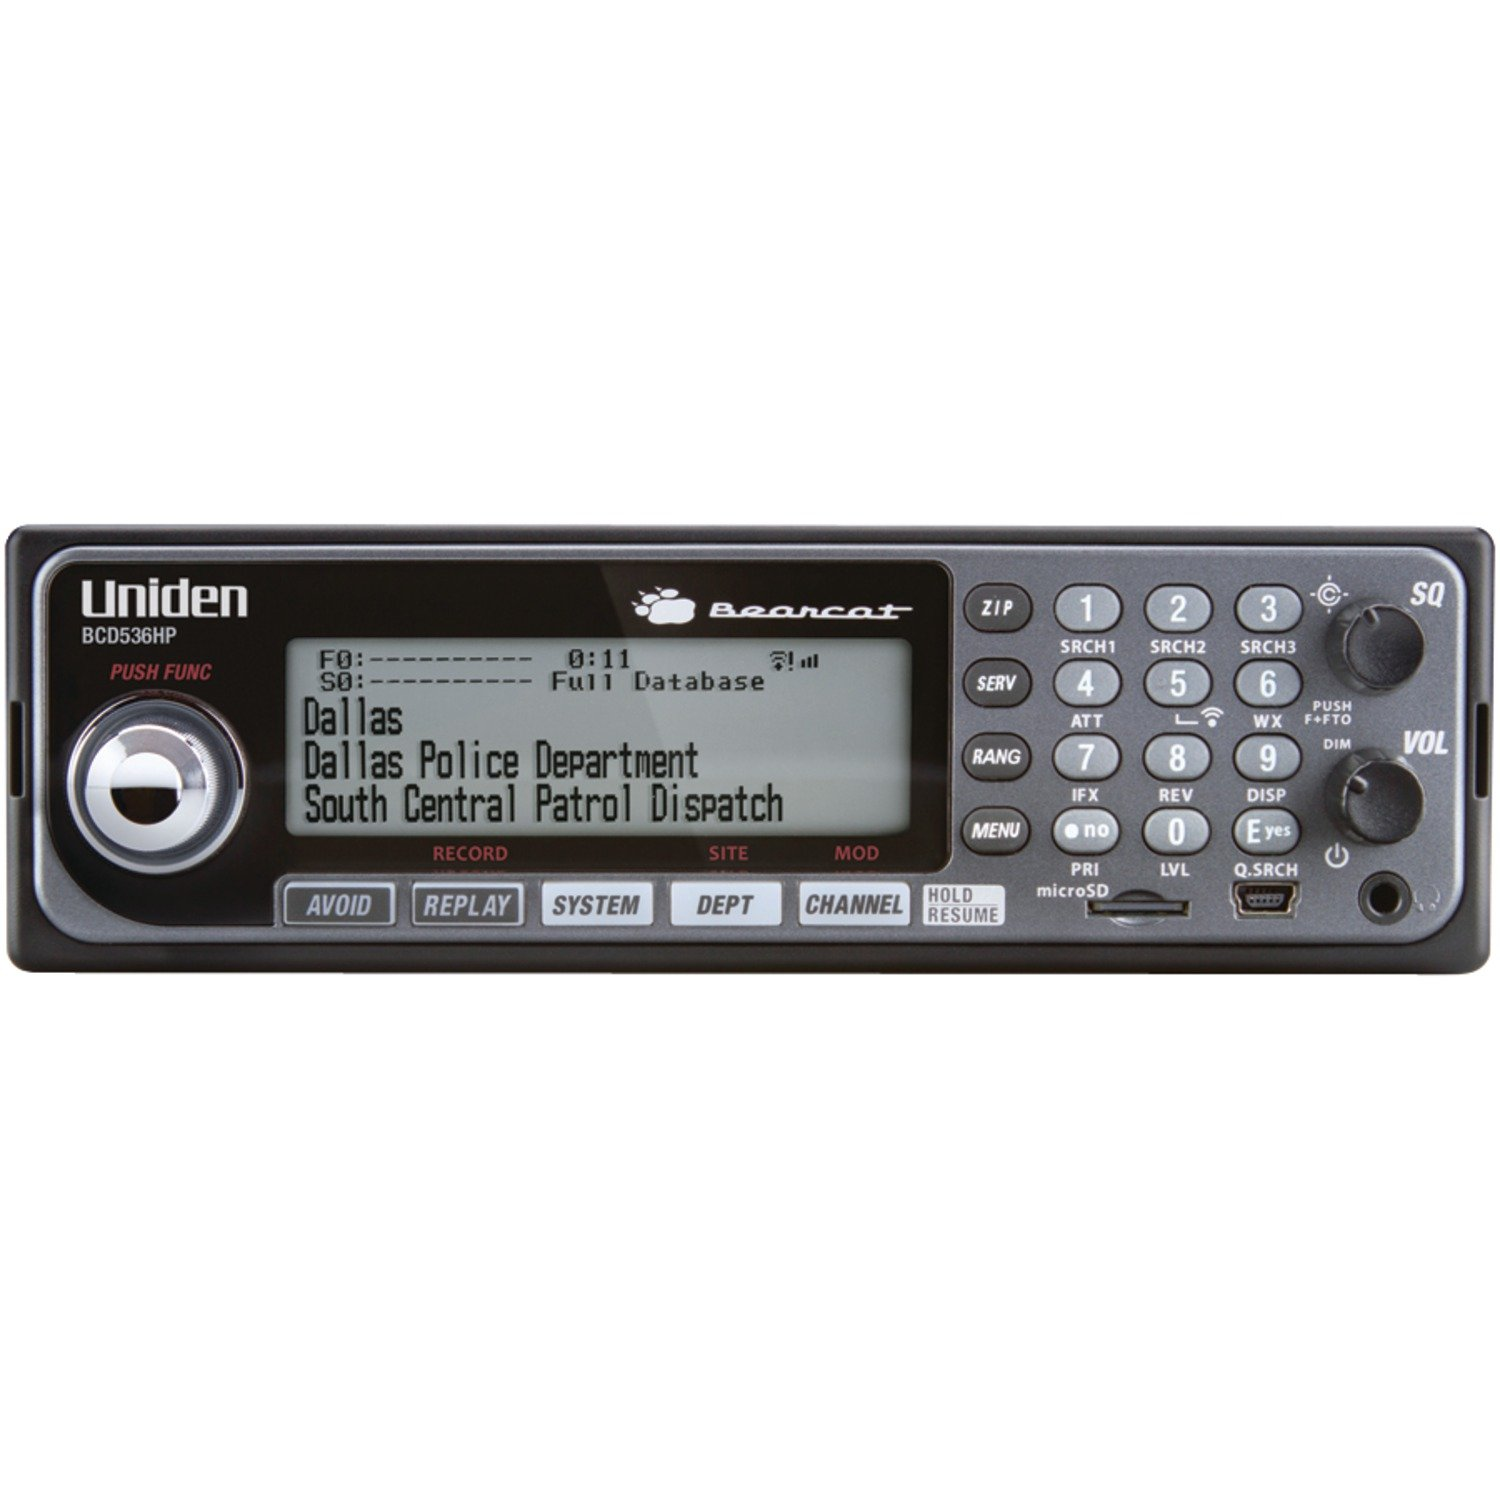 Uniden BCD536HP Digital Phase 2 Base/Mobile Scanner with HPDB and Wi-Fi by Uniden